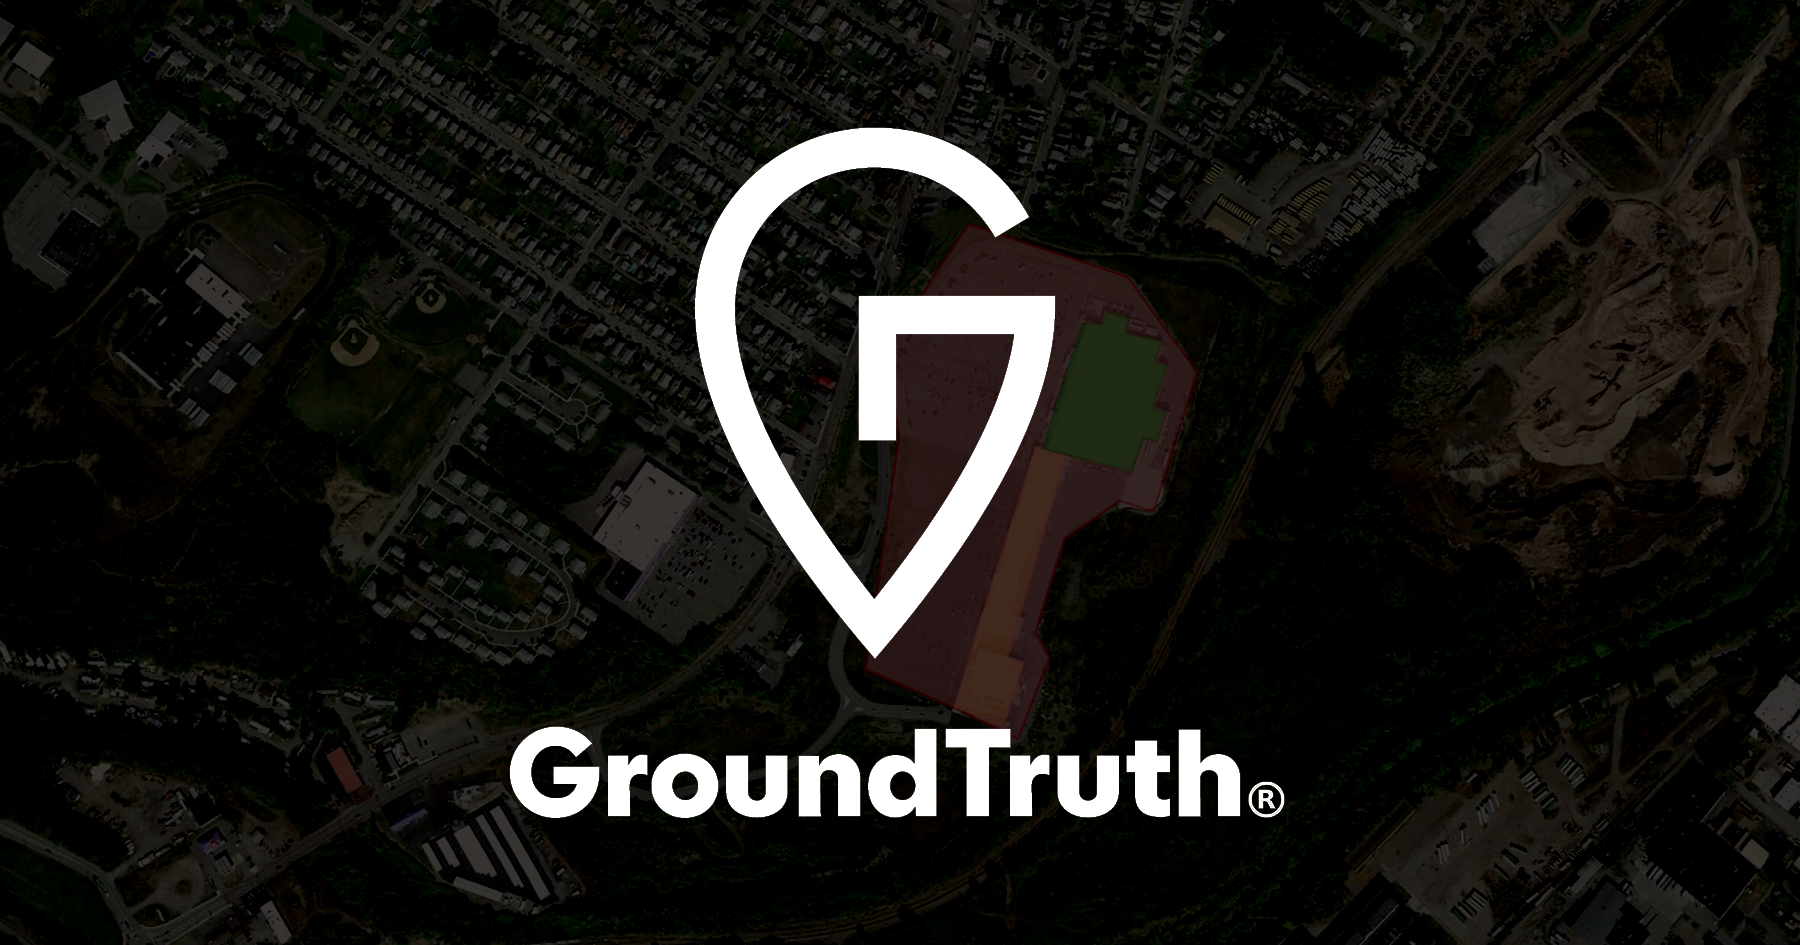 Technomic partners with GroundTruth